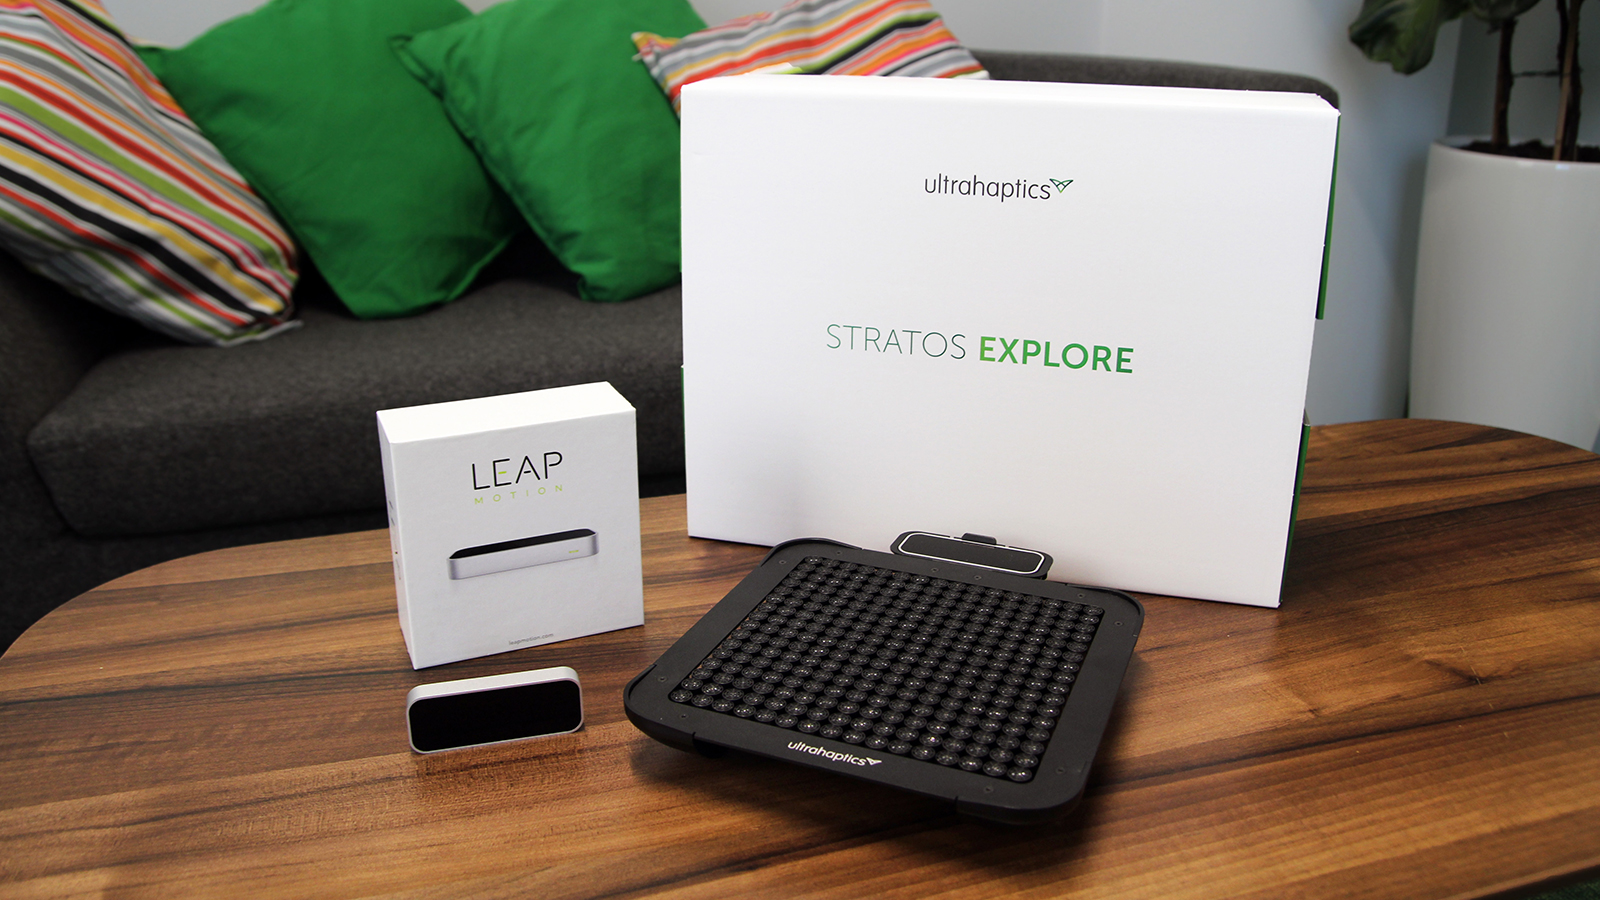 Leap Motion and Ultrahaptics STRATOS Explore products